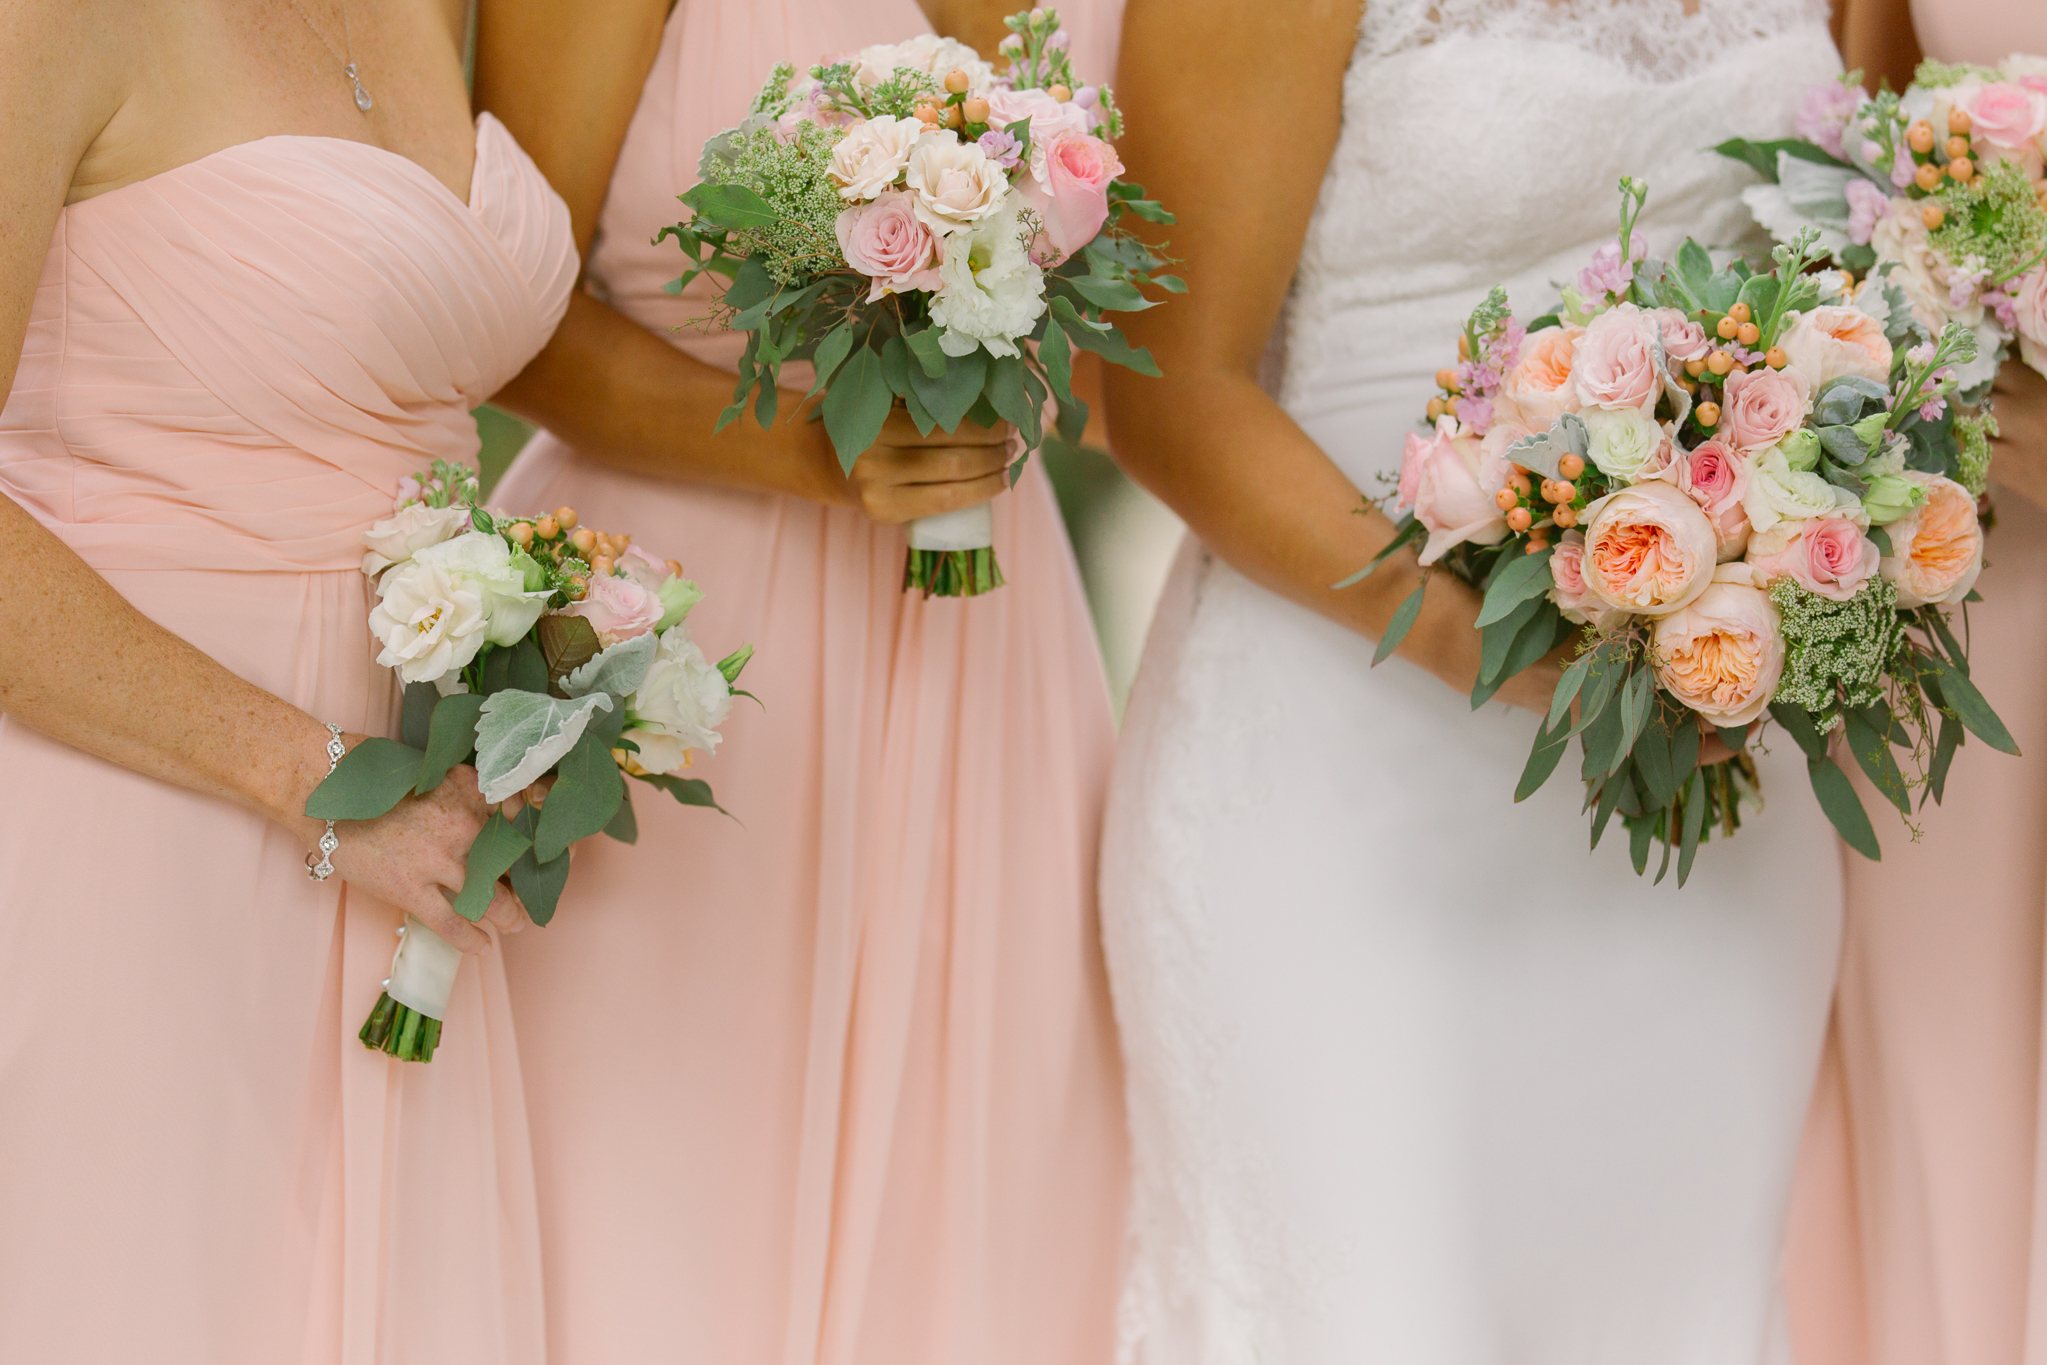 Pink wedding bouquets and pink bridesmaids dresses for San Diego, California outdoor wedding planned by Exhale Events. See all the beautiful details at exhale-events.com!